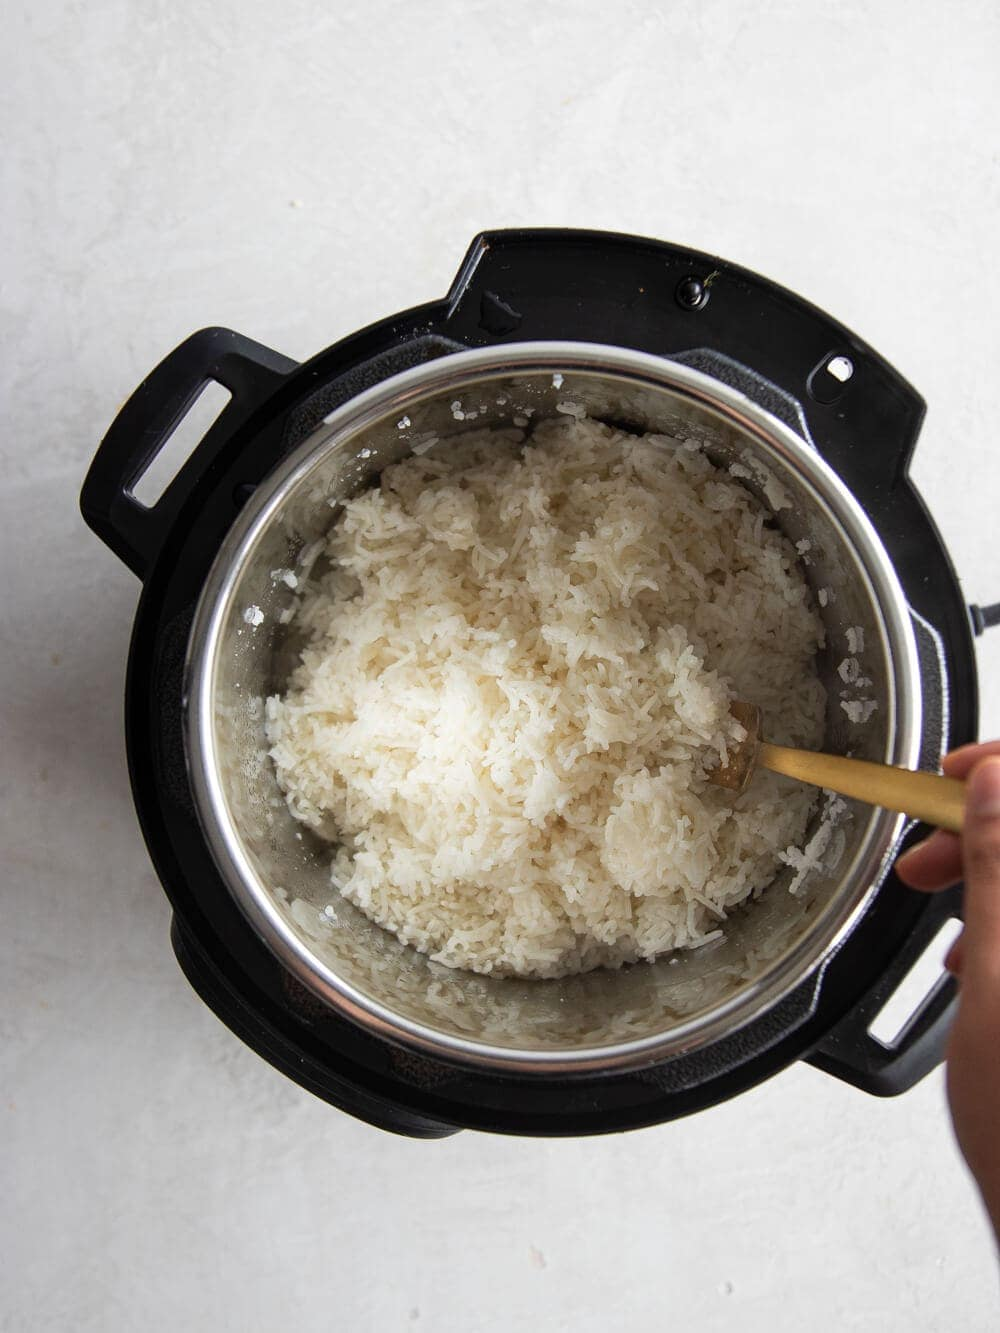 Fluffing the rice with a fork